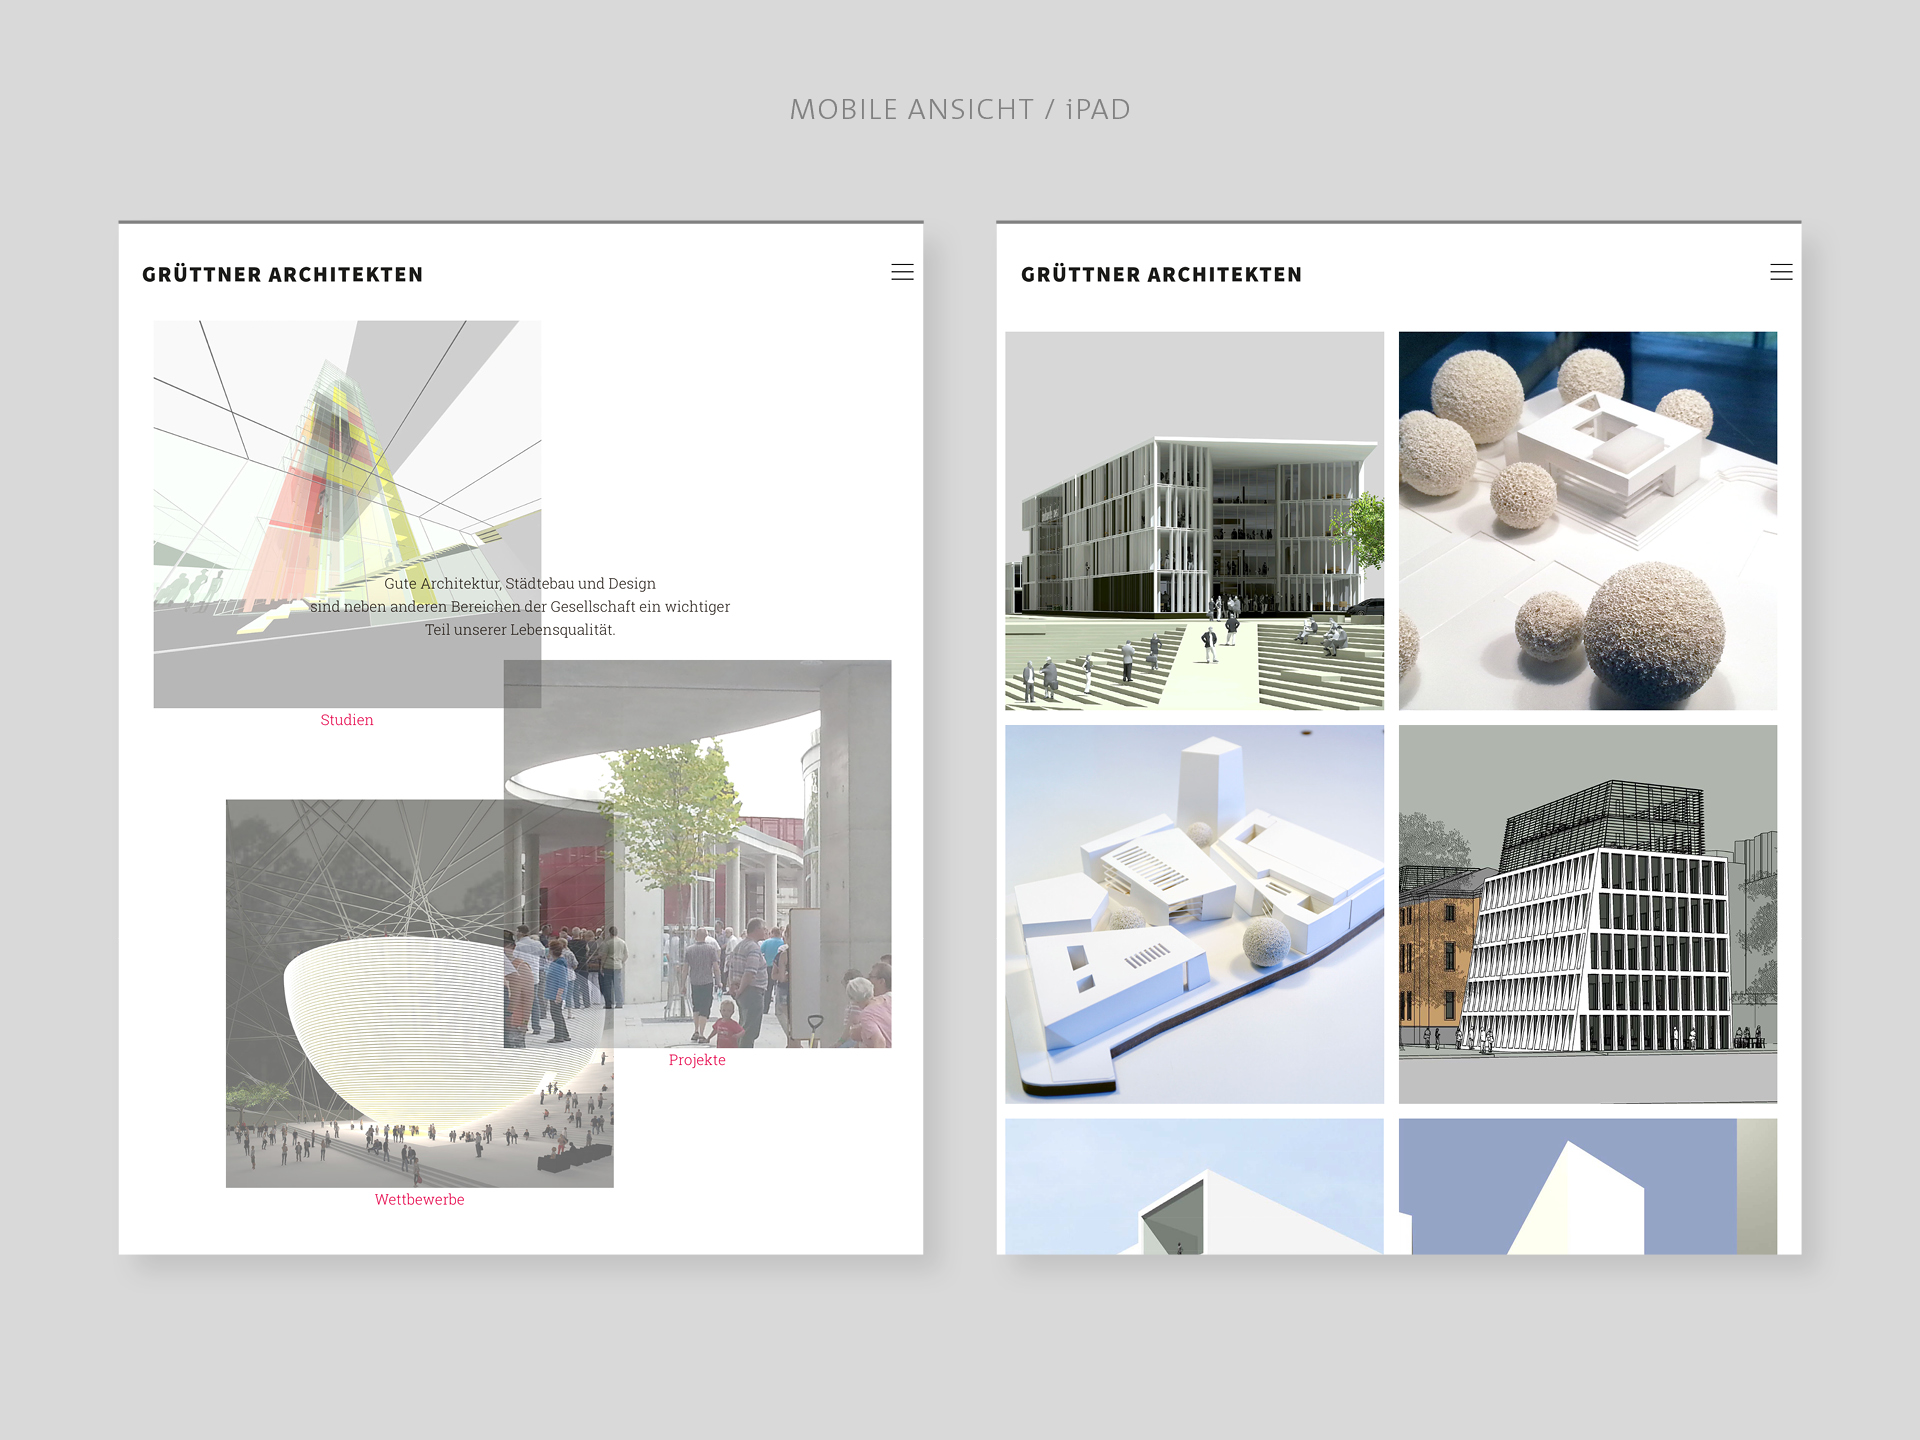 Website, Architektur, Webdesign, Konzept, Layout, Re-design, Bennet, Grüttner, Münster, Auckz